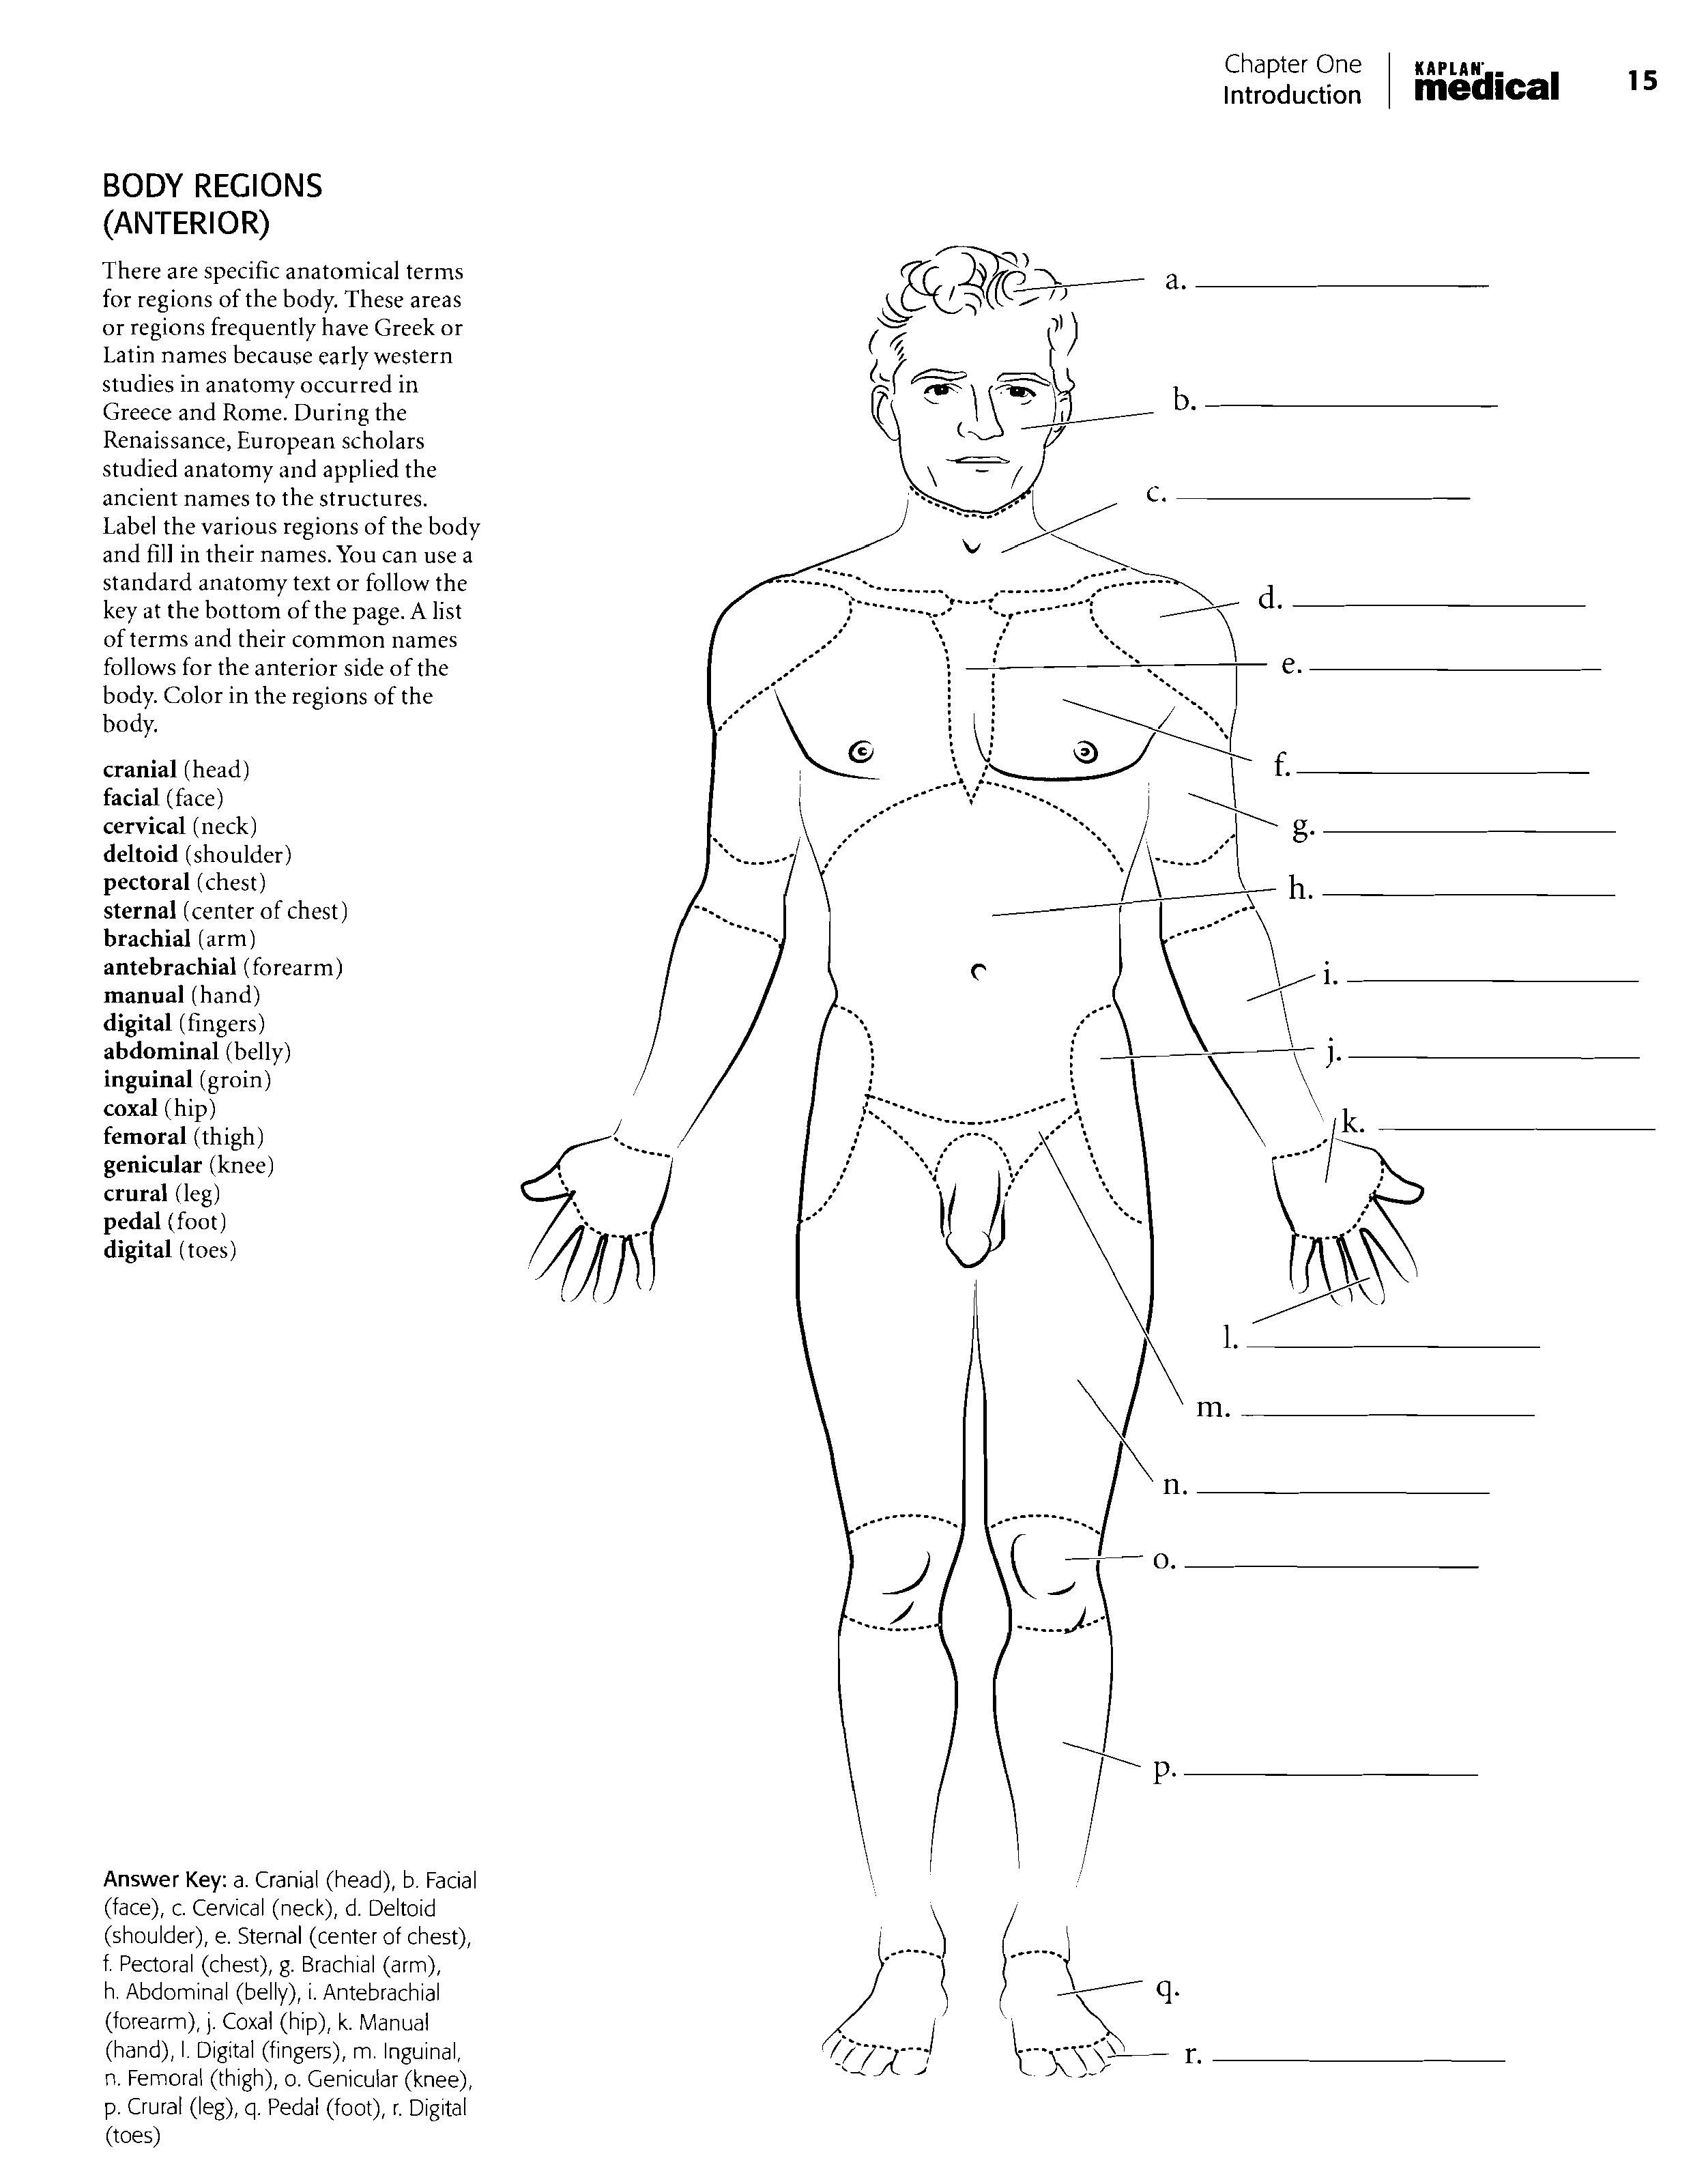 Kaplan Anatomy Coloring Book.pdf | Skull coloring pages ...